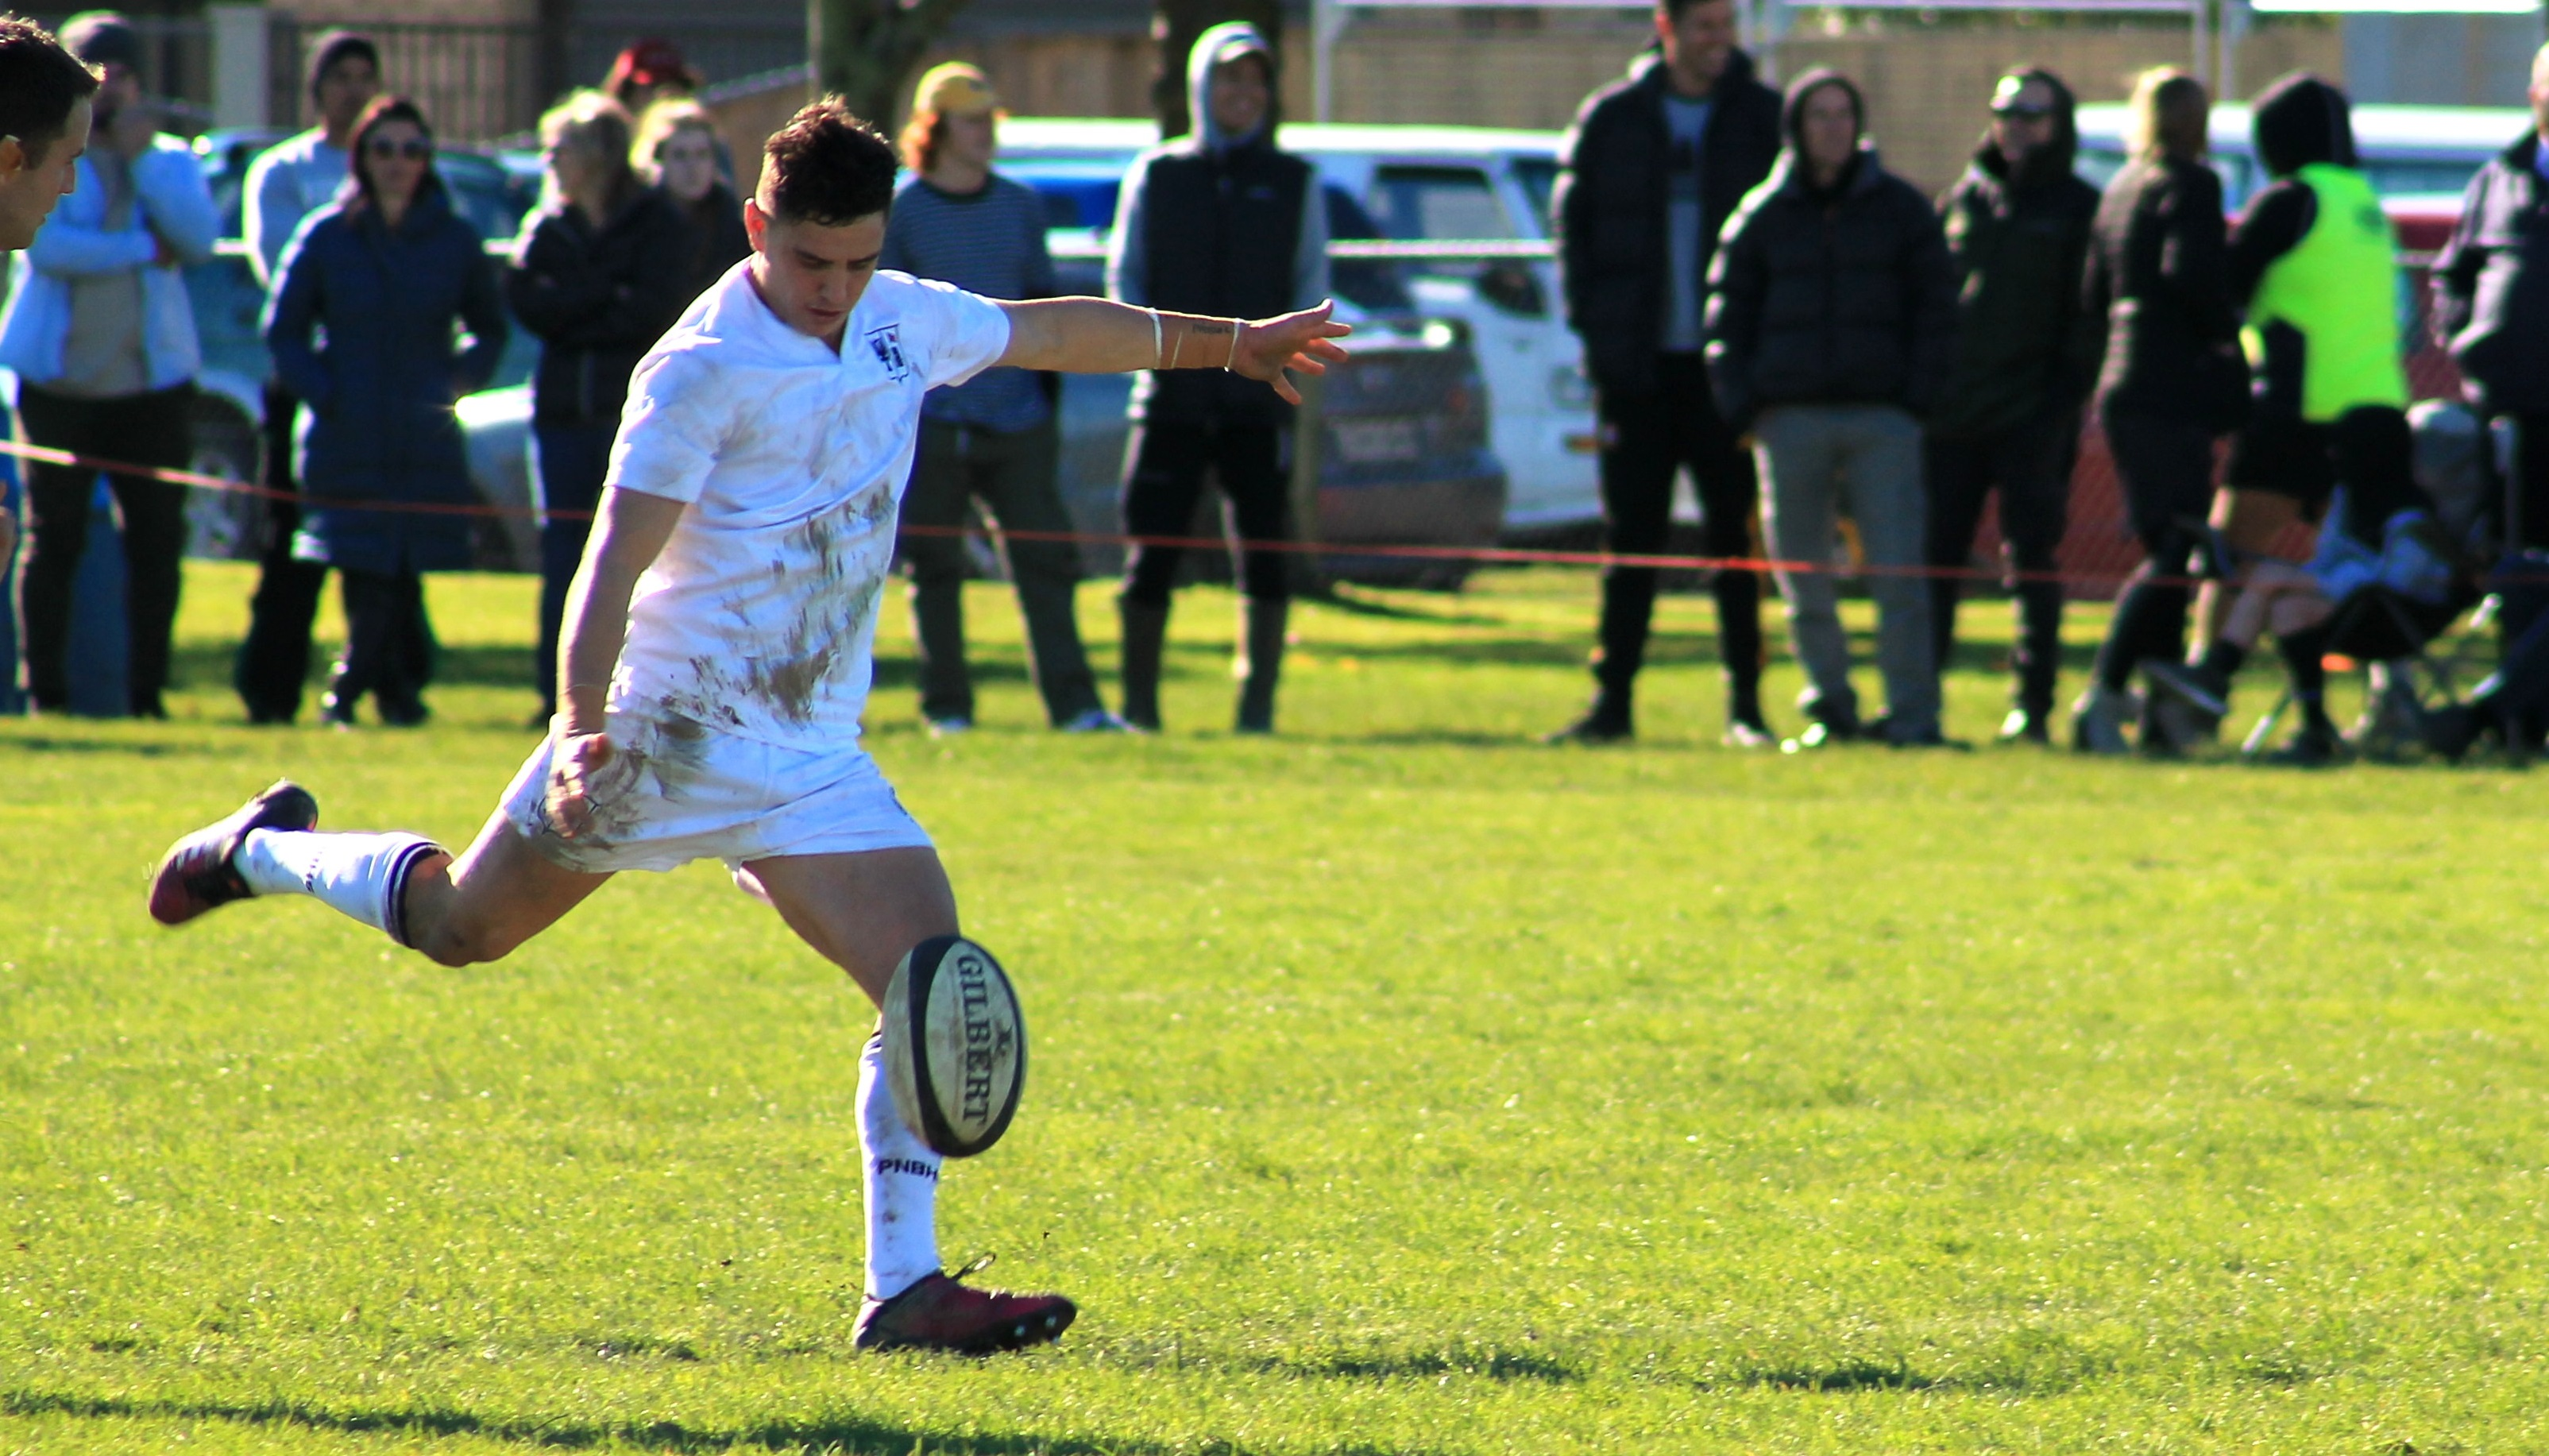 Strong Manawatu representation in Canes Under 18s